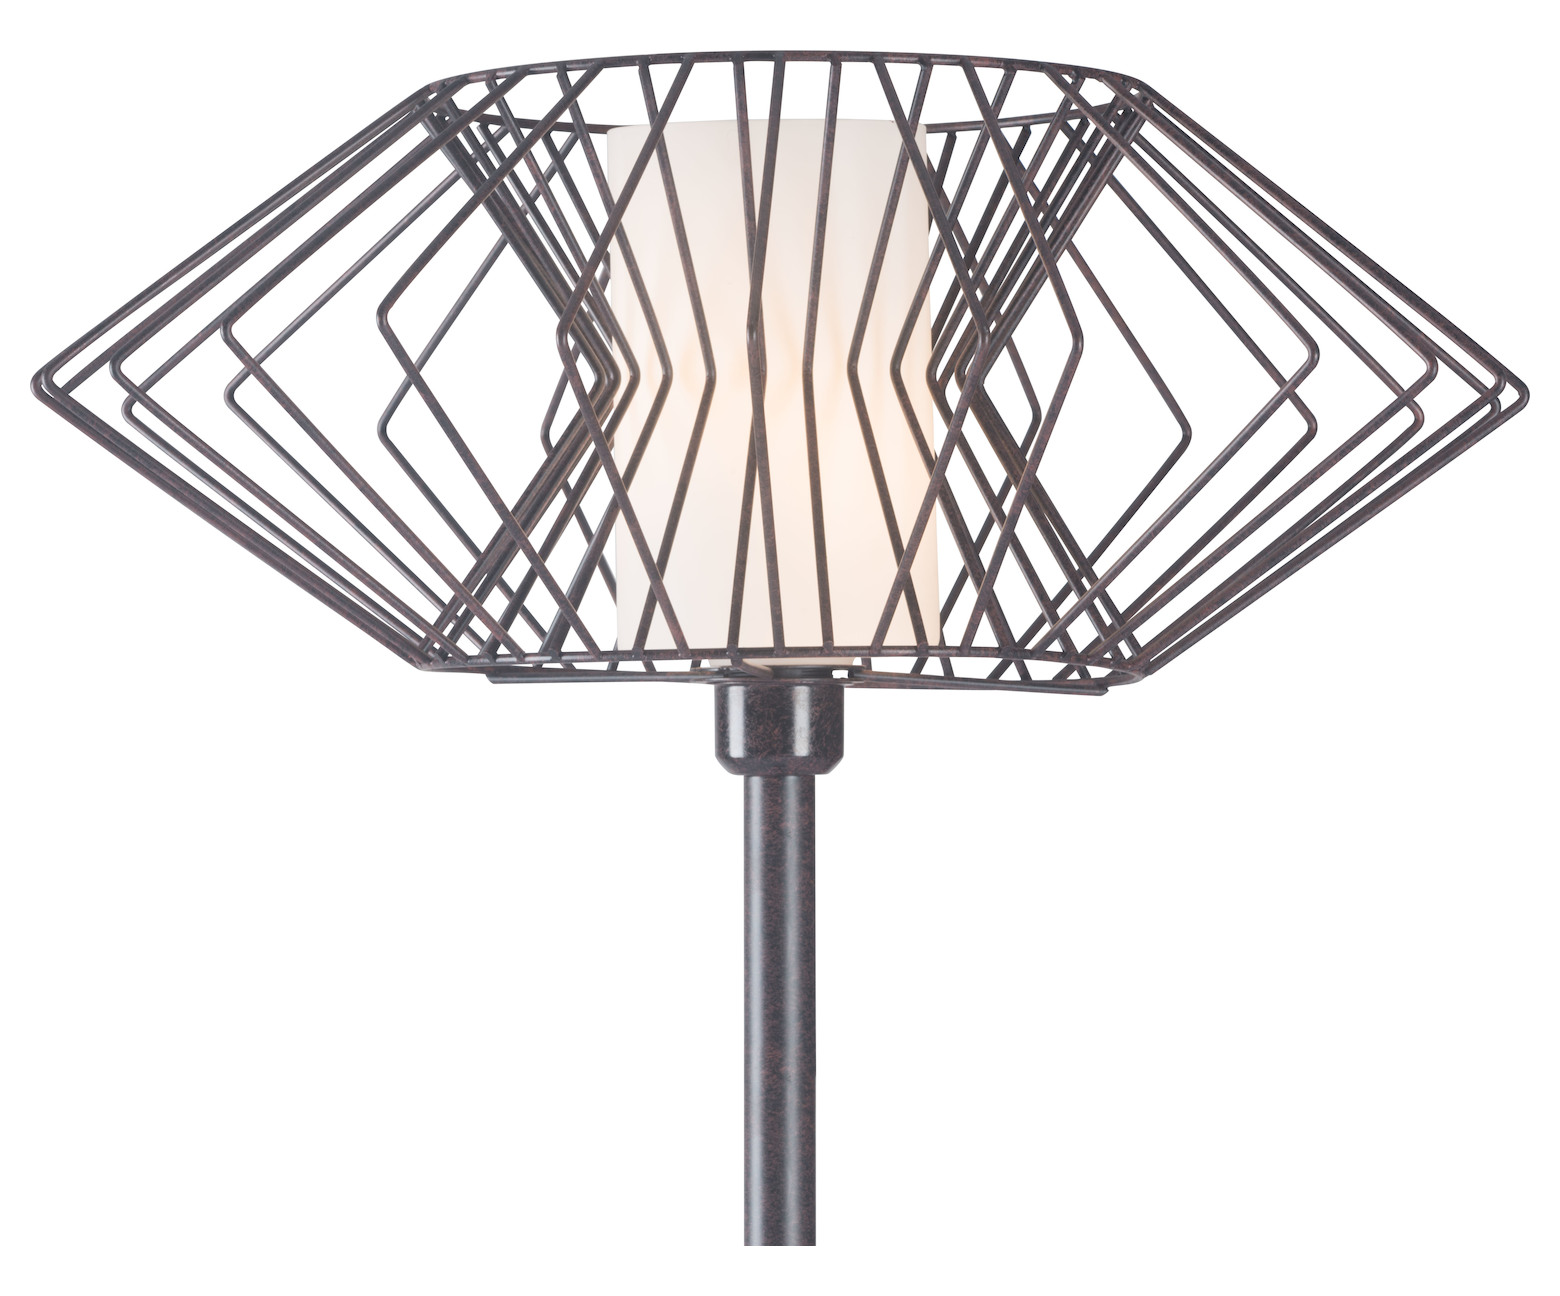 Zuo Modern Zuo Modern Tumble 56011 Floor Lamps 56011 From